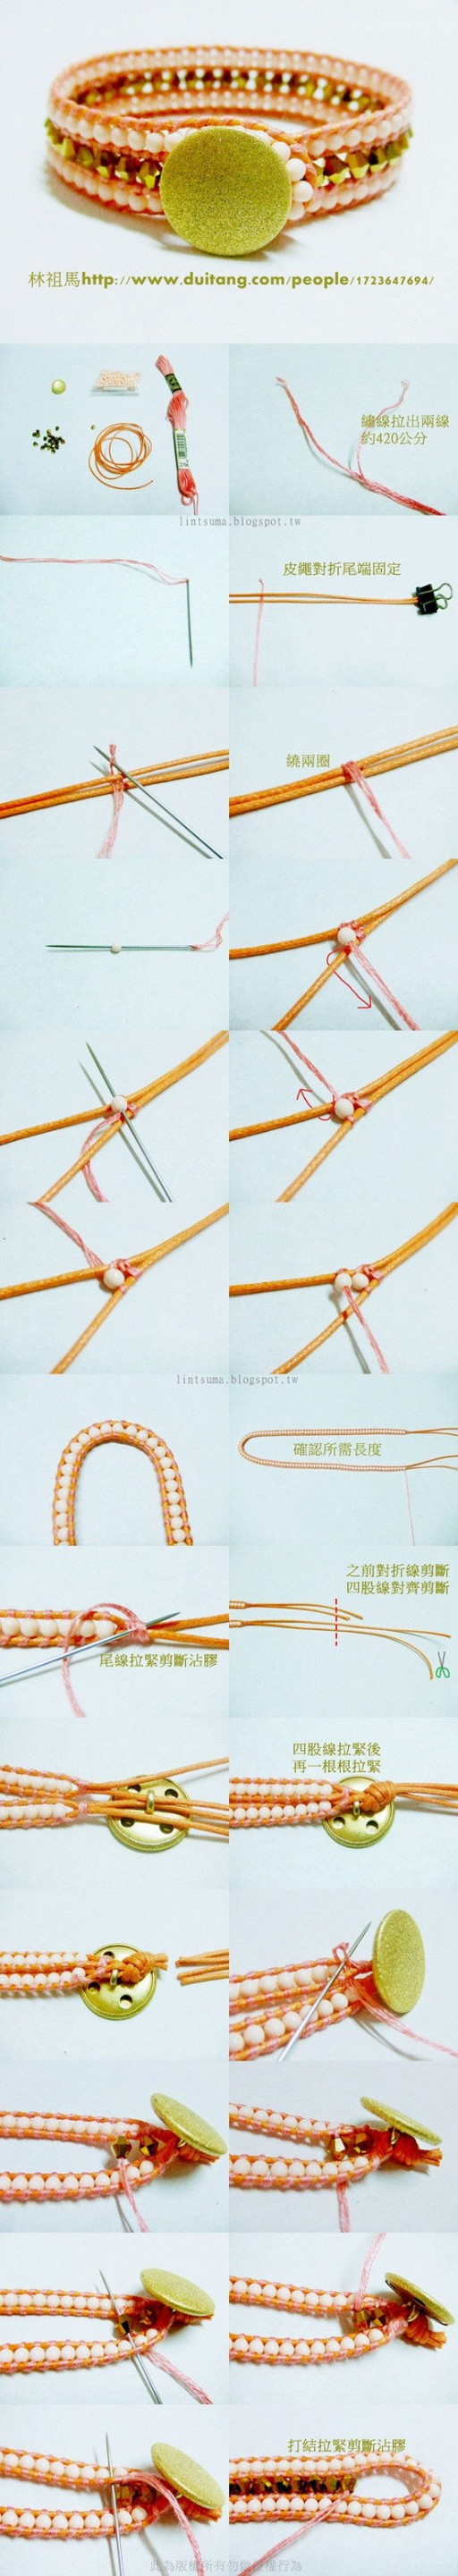 How to make Beaded Cord Bracelet step by step DIY tutorial instructions